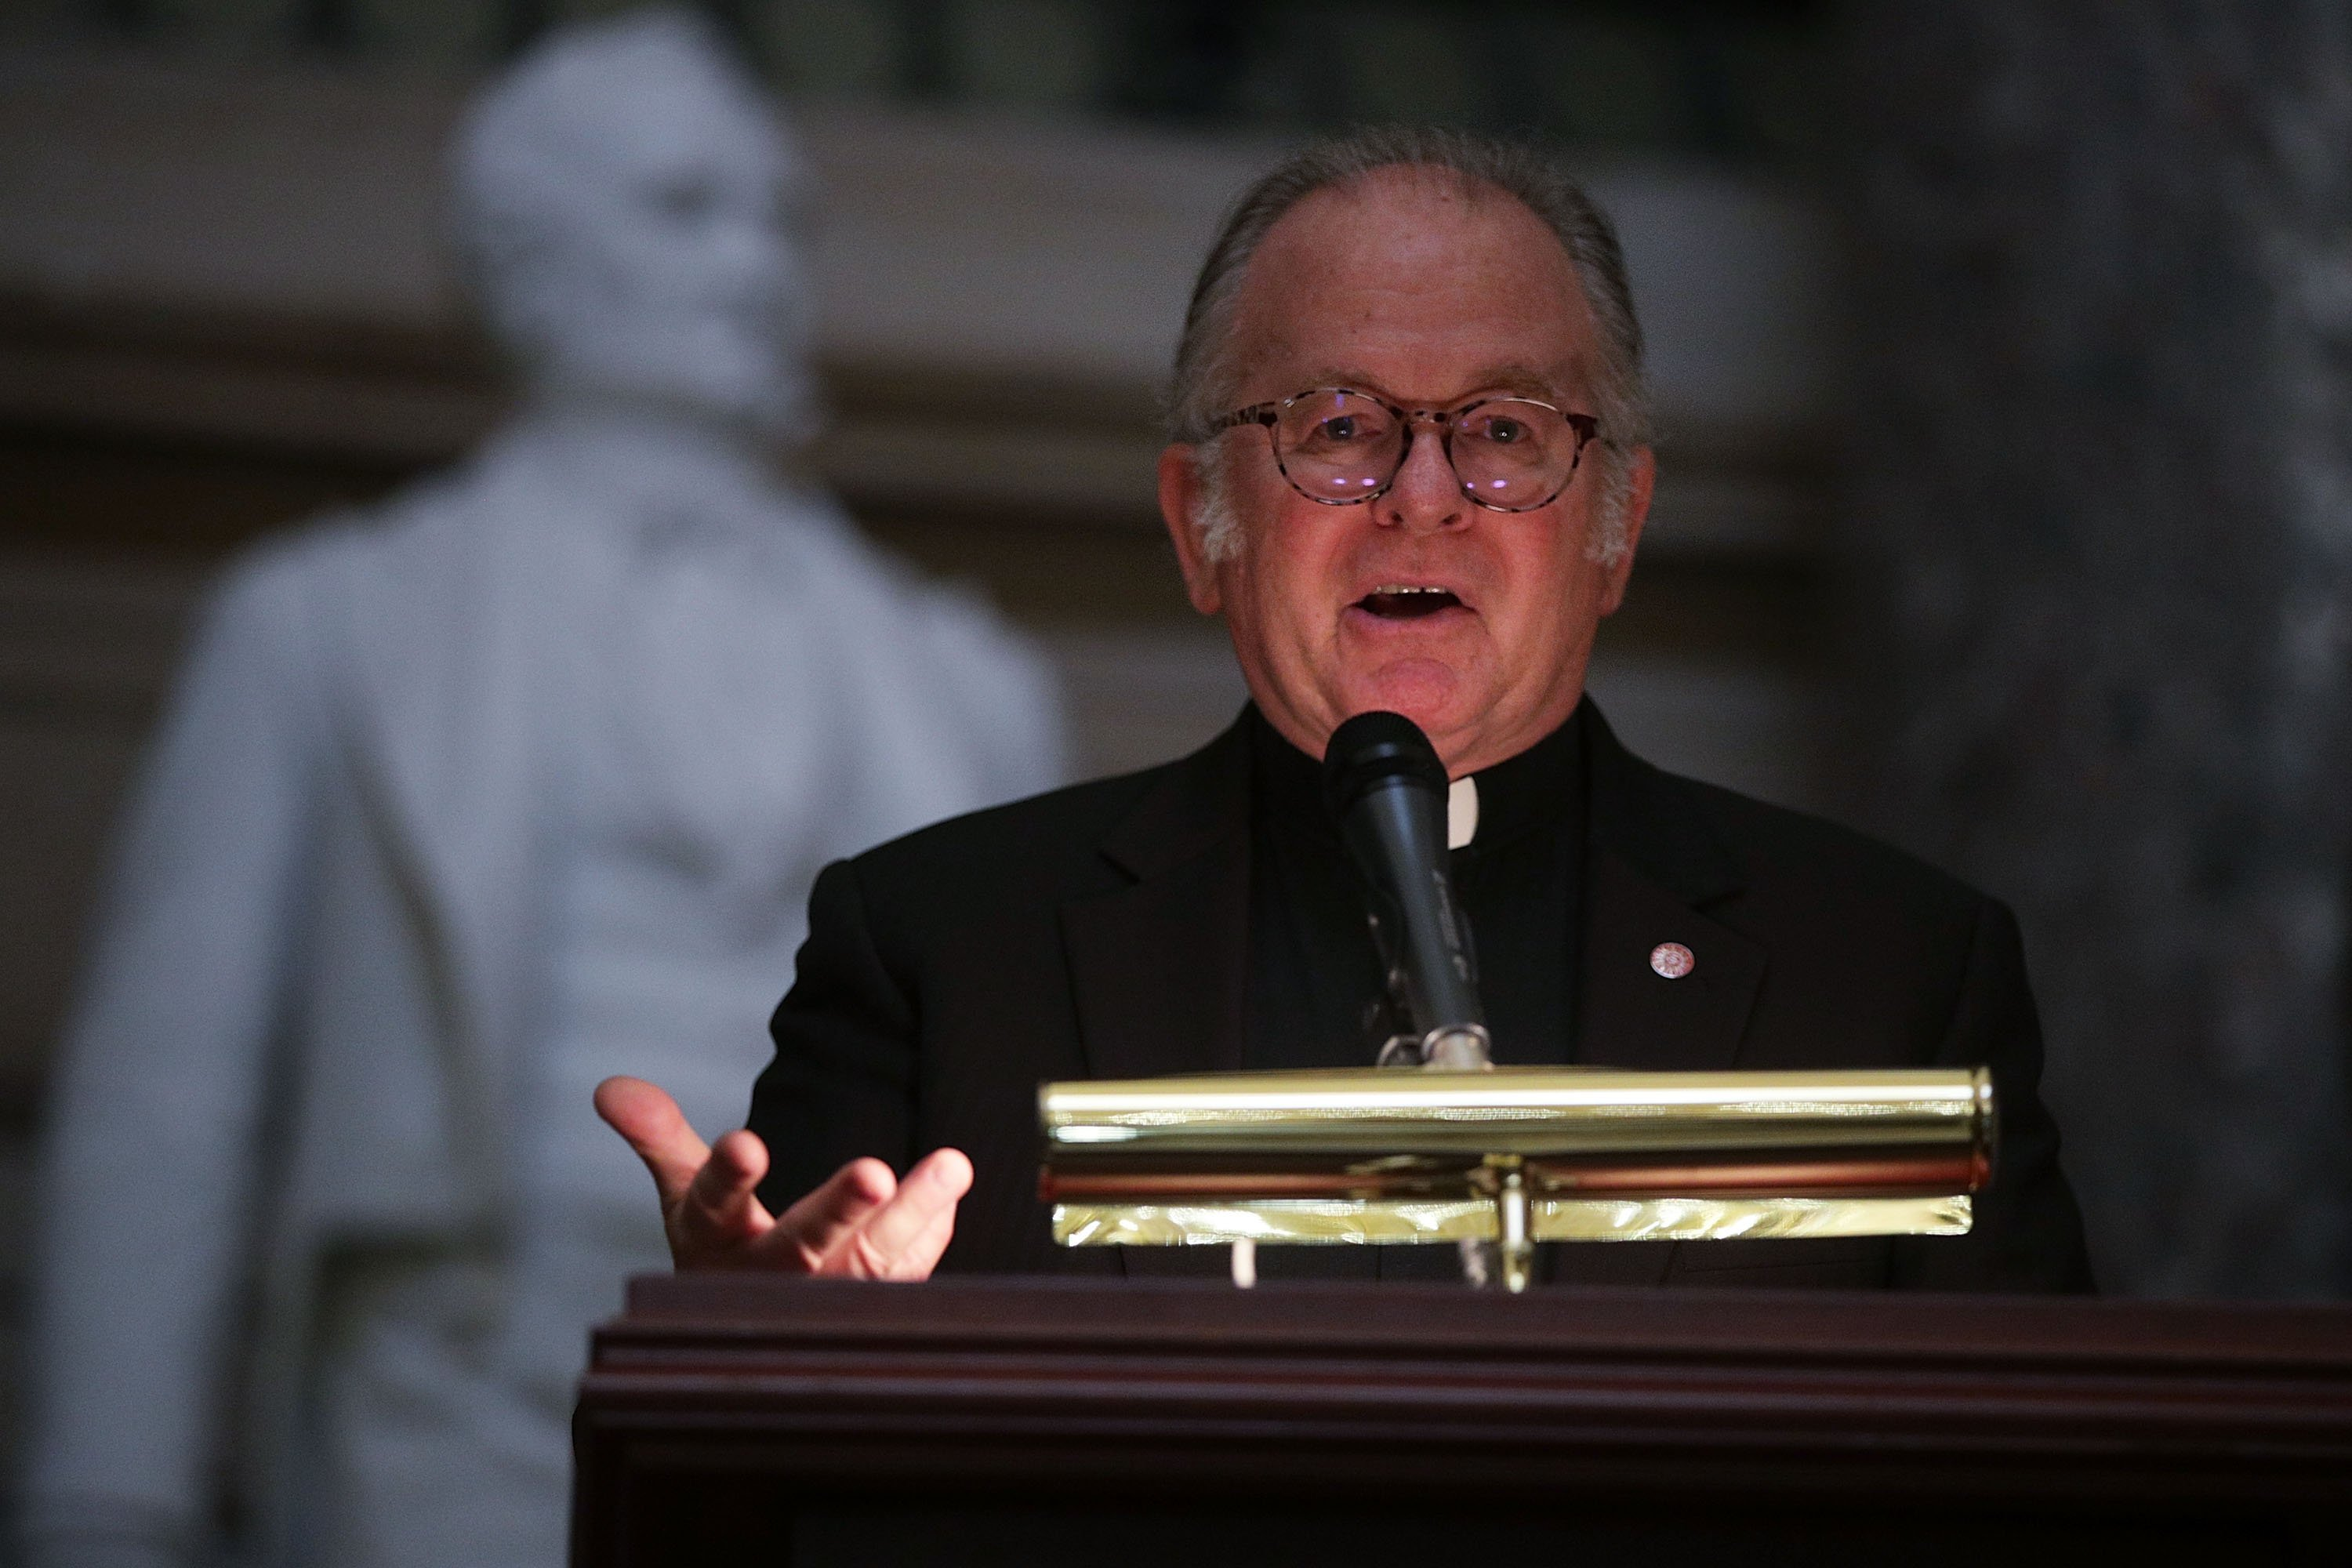 House chaplain prays to cast 'spirits of darkness' from Congress